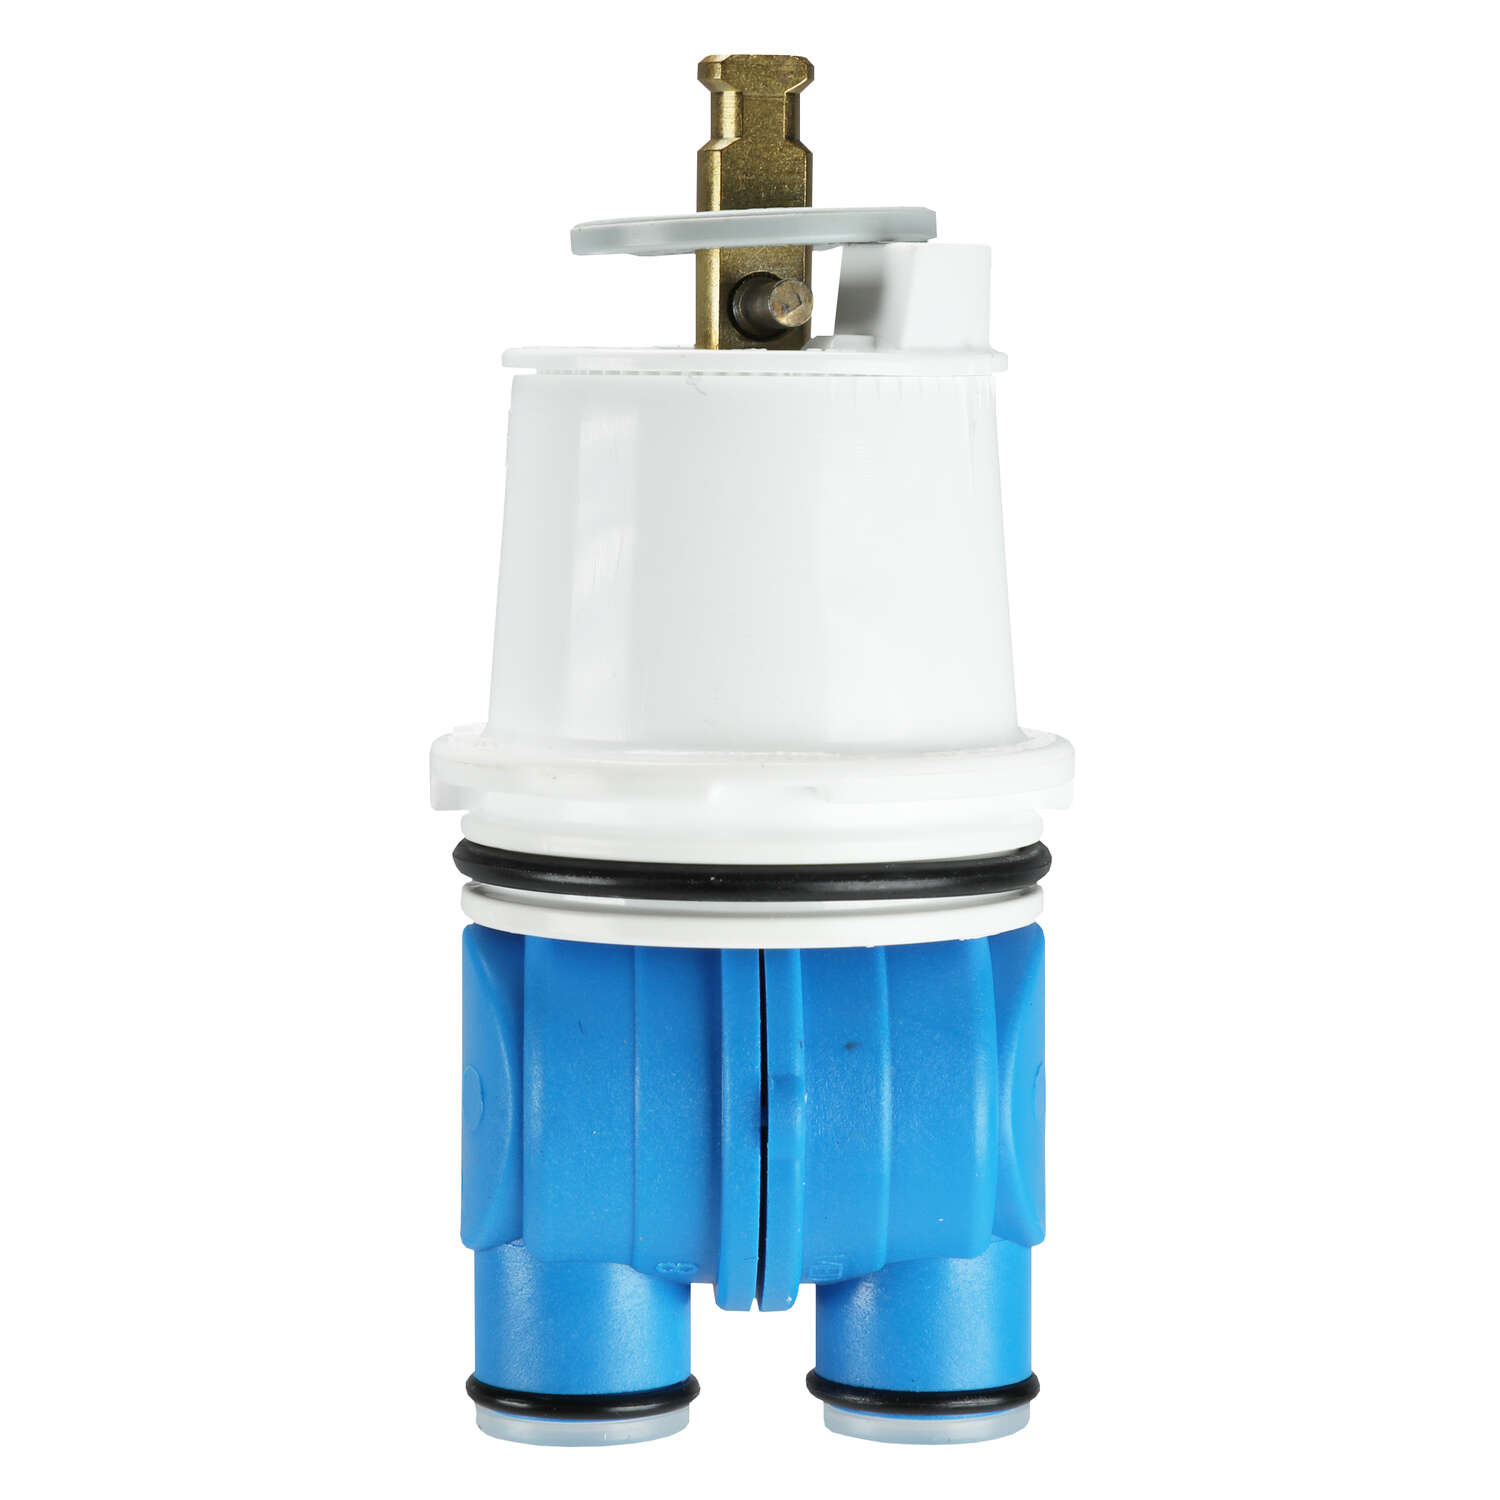 How To Remove Delta Shower Faucet Cartridge